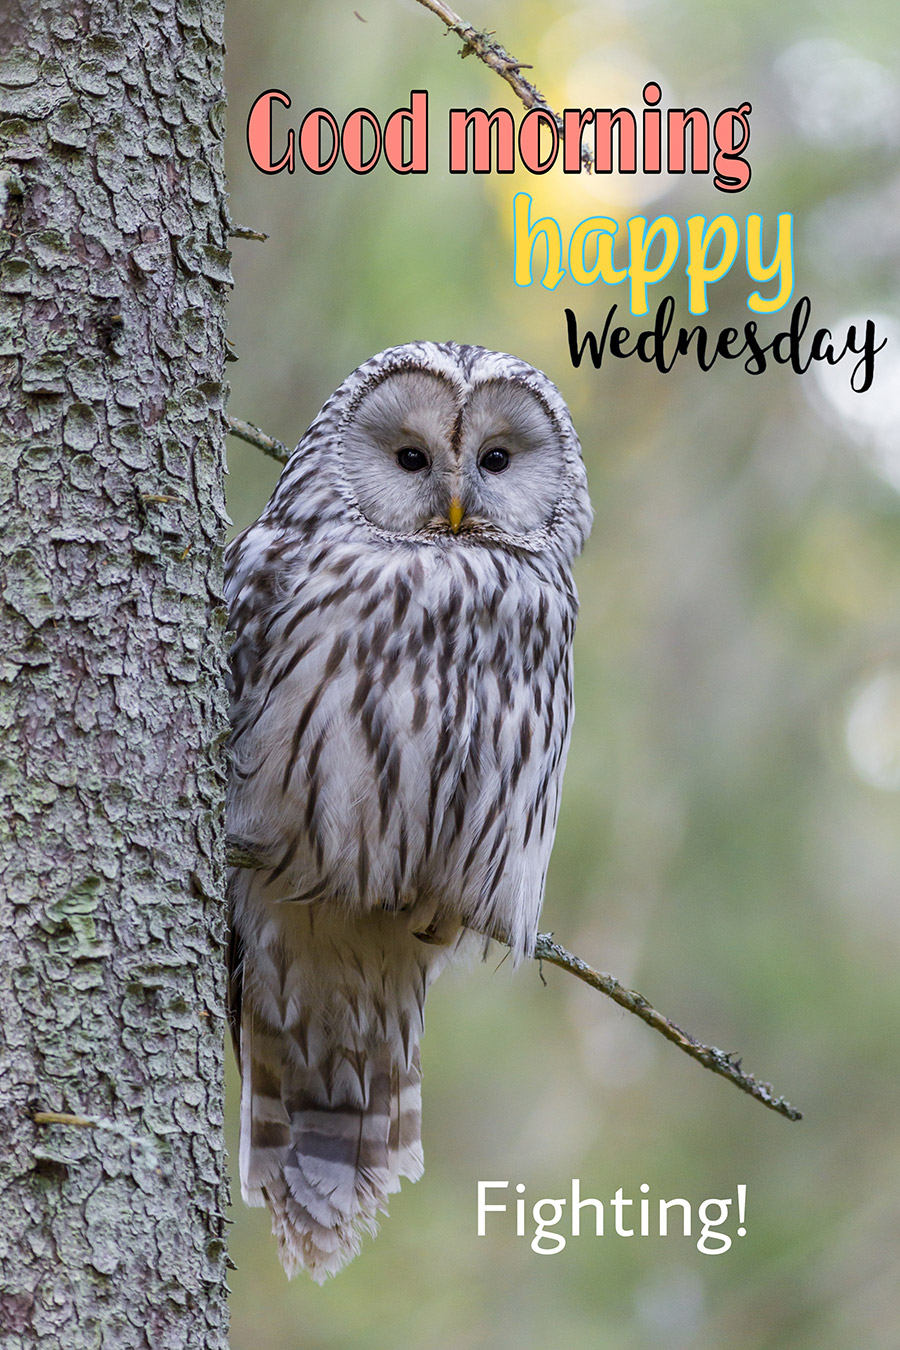 Good morning wednesday image with owl